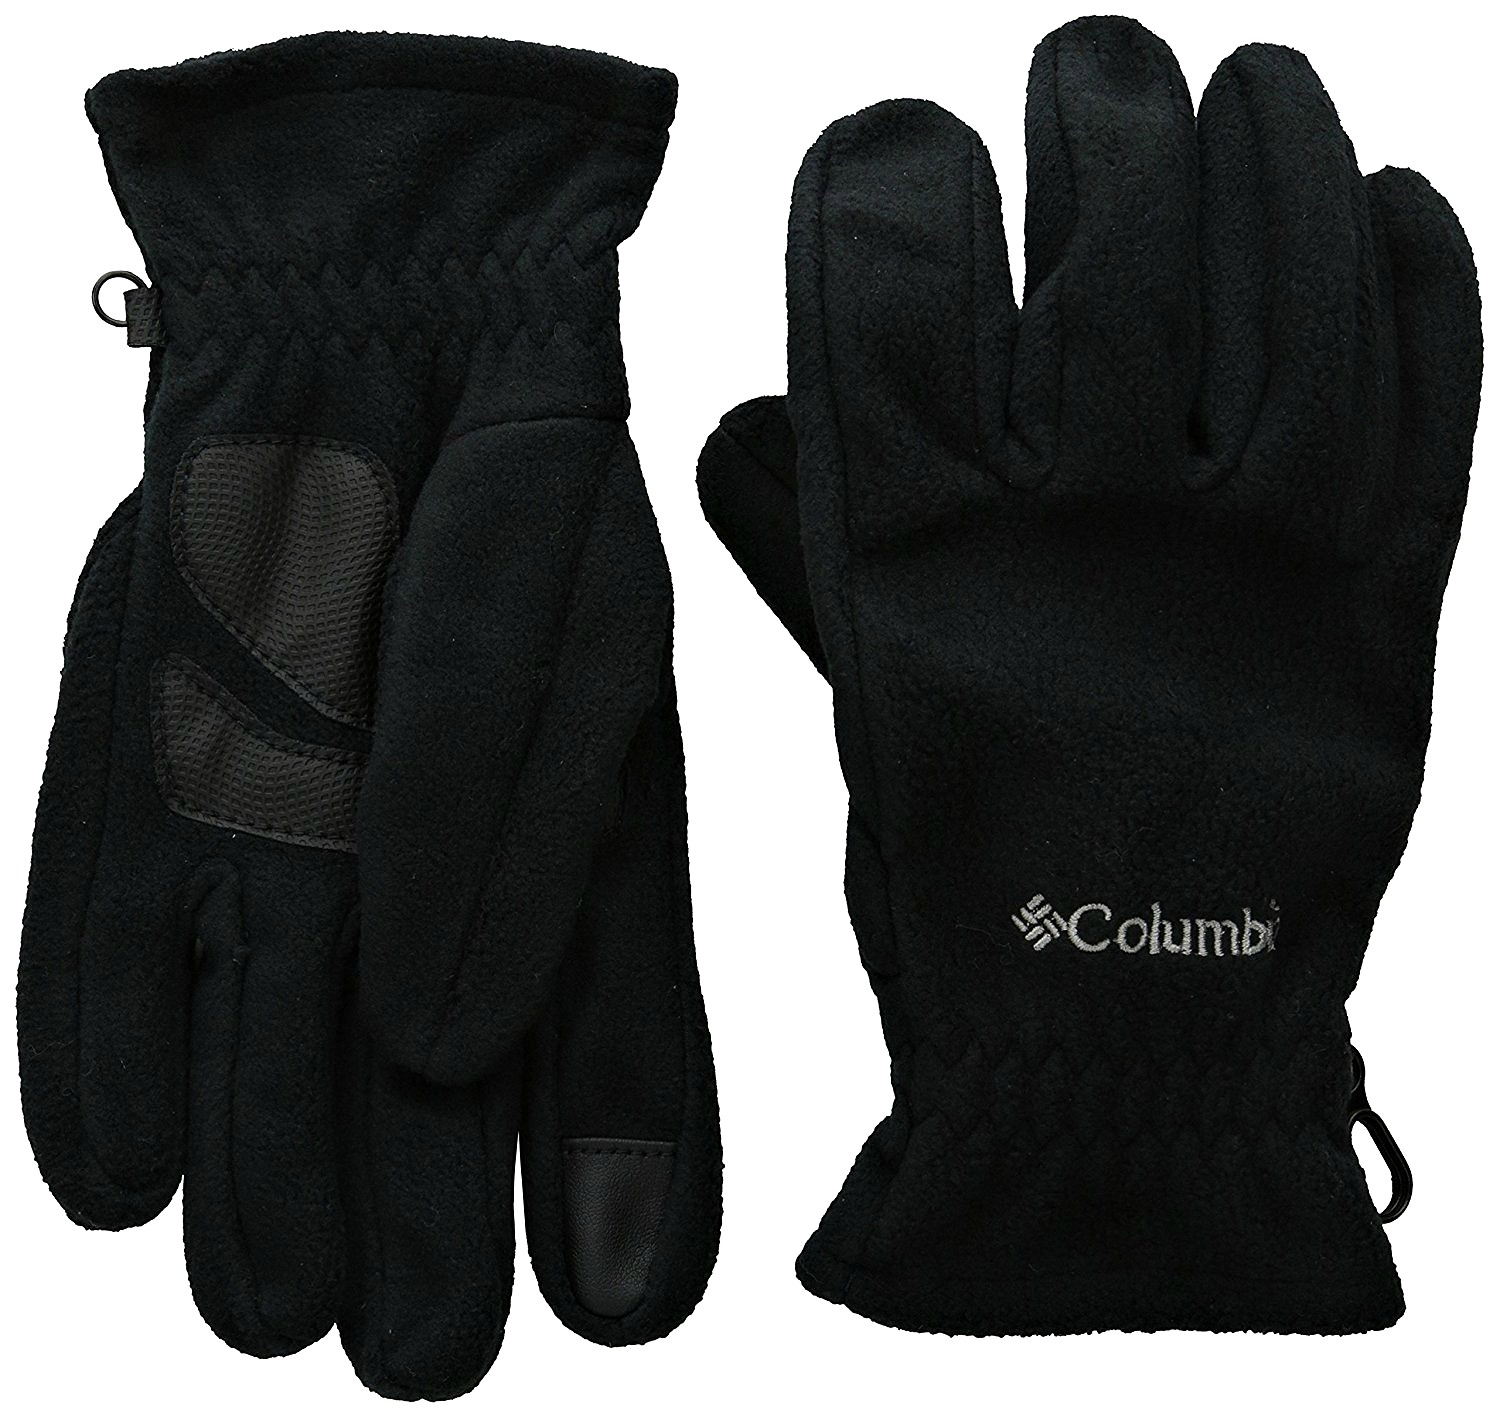 f0f250b67fc What are the Warmest Gloves for Cold Weather?